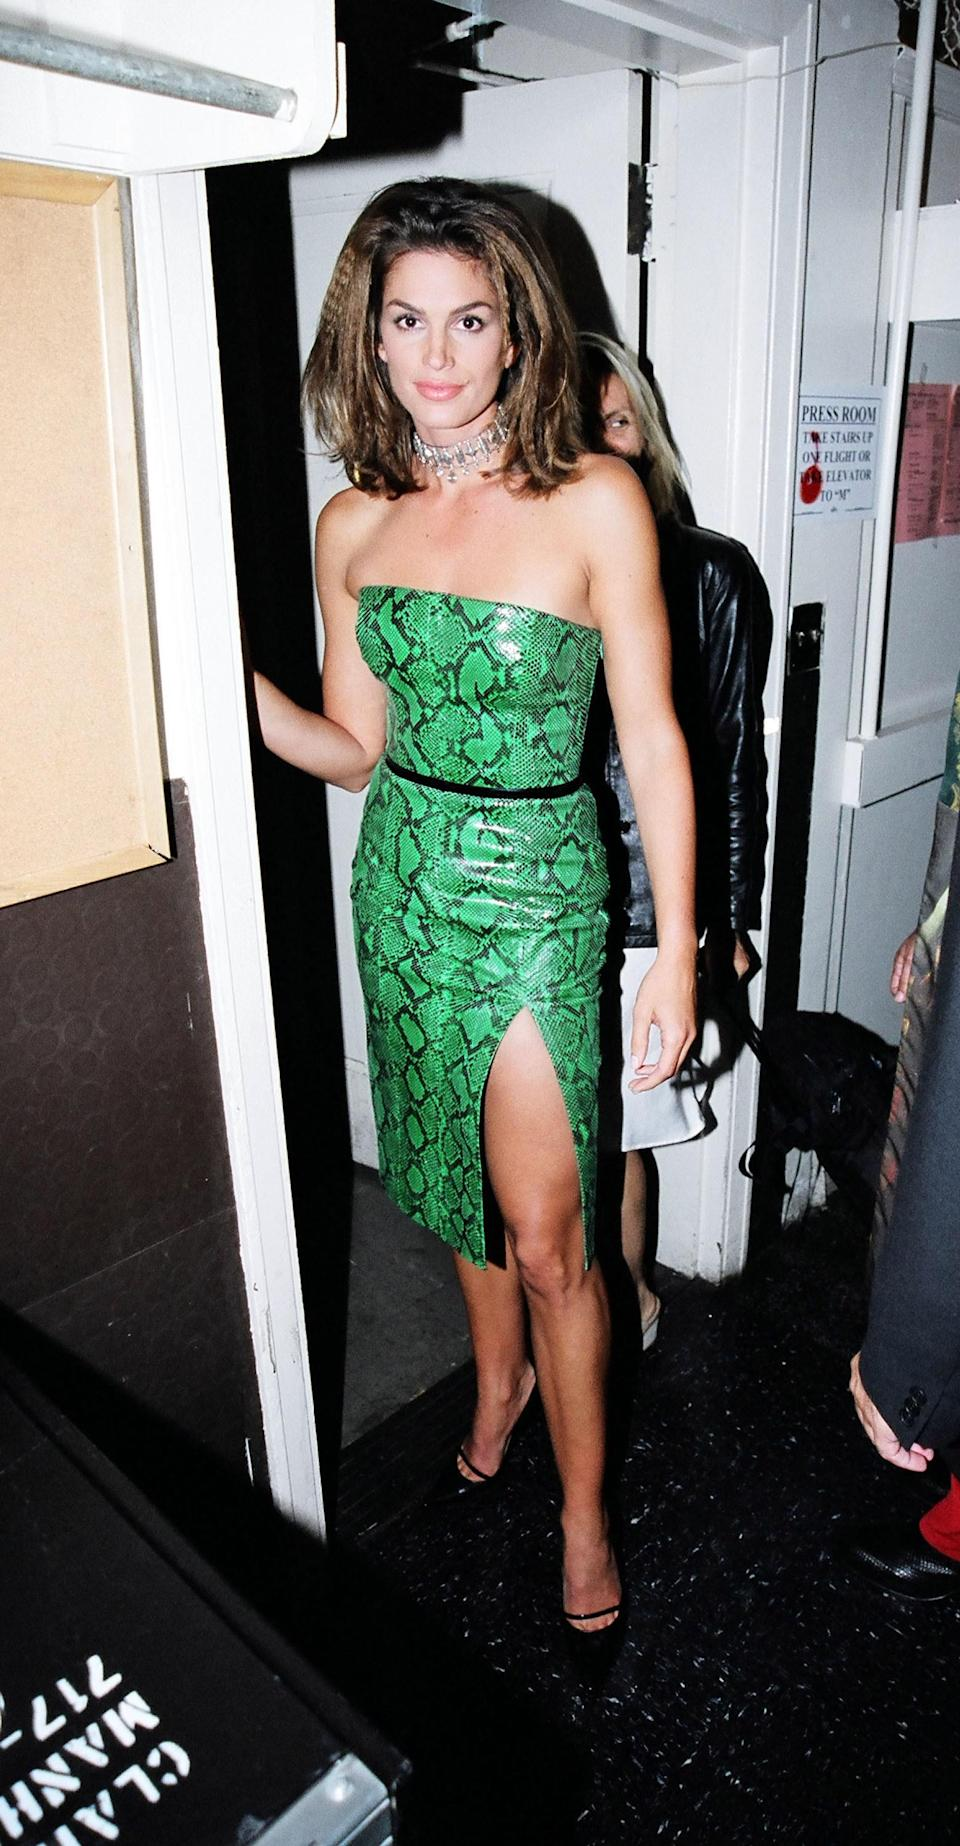 Kaia Gerber clearly gets it from her mama. The green python and thigh-high slit were a clear demonstration of Cindy Crawford's trendsetting, supermodel status.